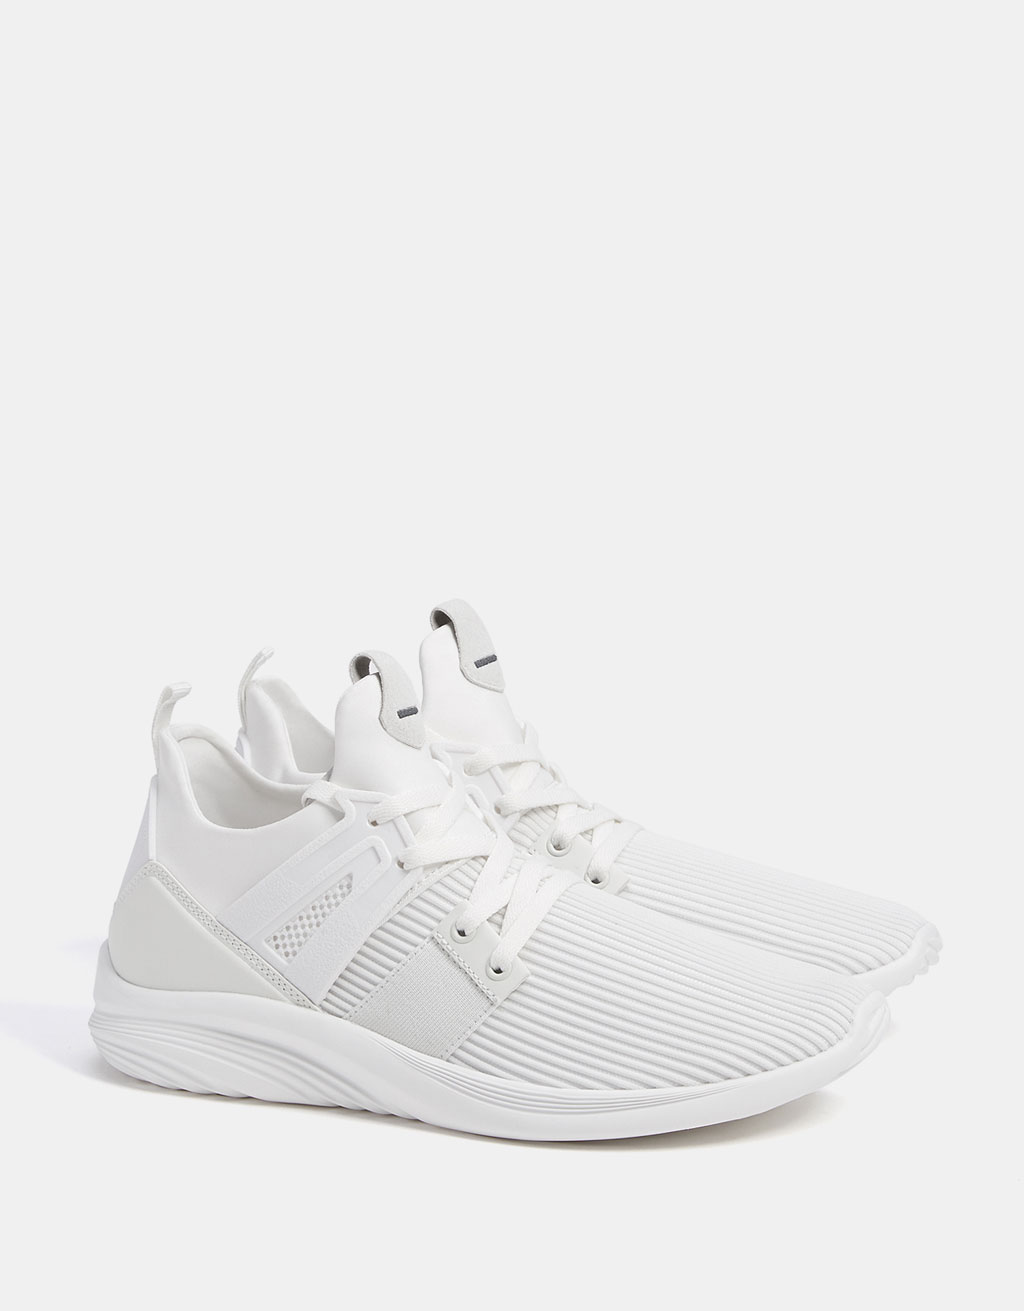 Men's fabric technical sports shoes